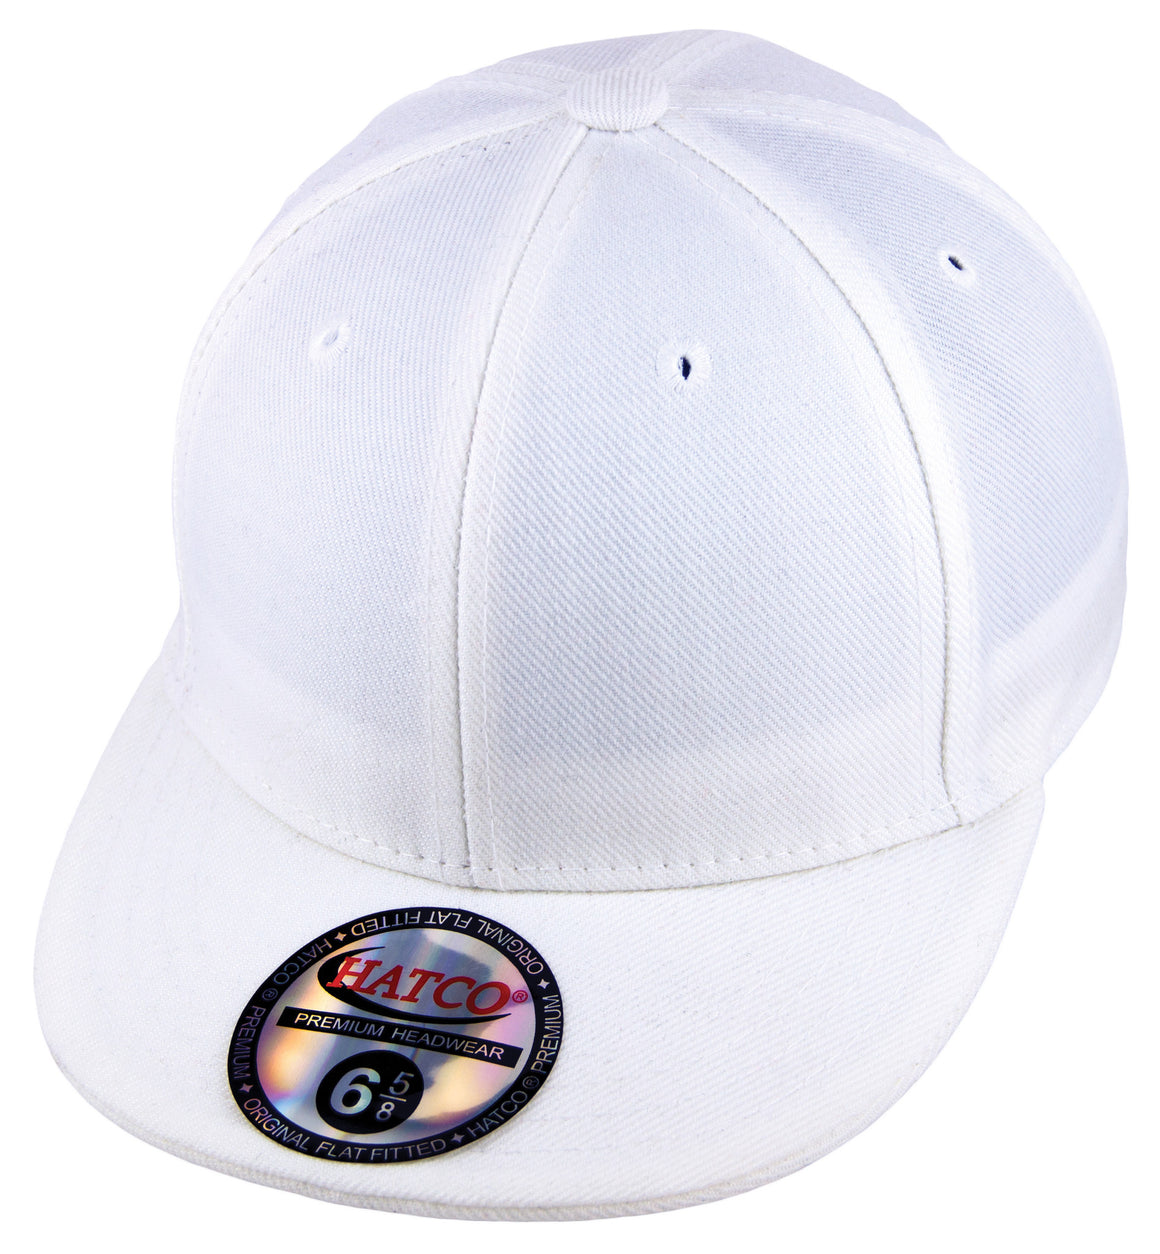 Blank Flat Fitted Cap - Kids - White - HATCOcaps.com